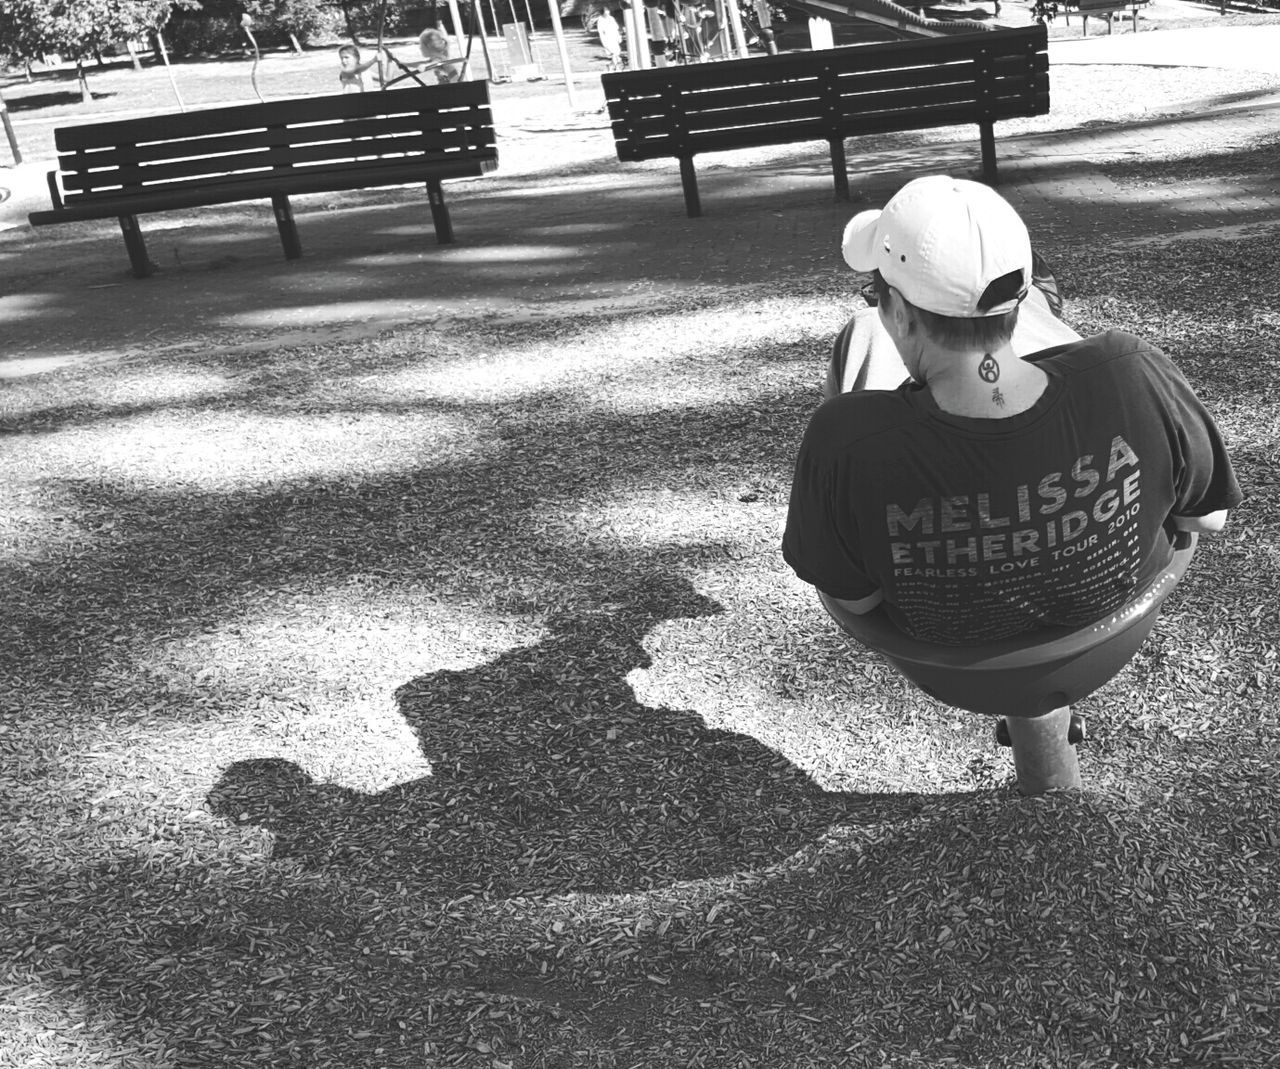 Me And My Shadow Black And White Park Scene Playfulness Back Turned Capture The Moment Bnw_friday_eyeemchallenge Picturing Individuality Uniqueness